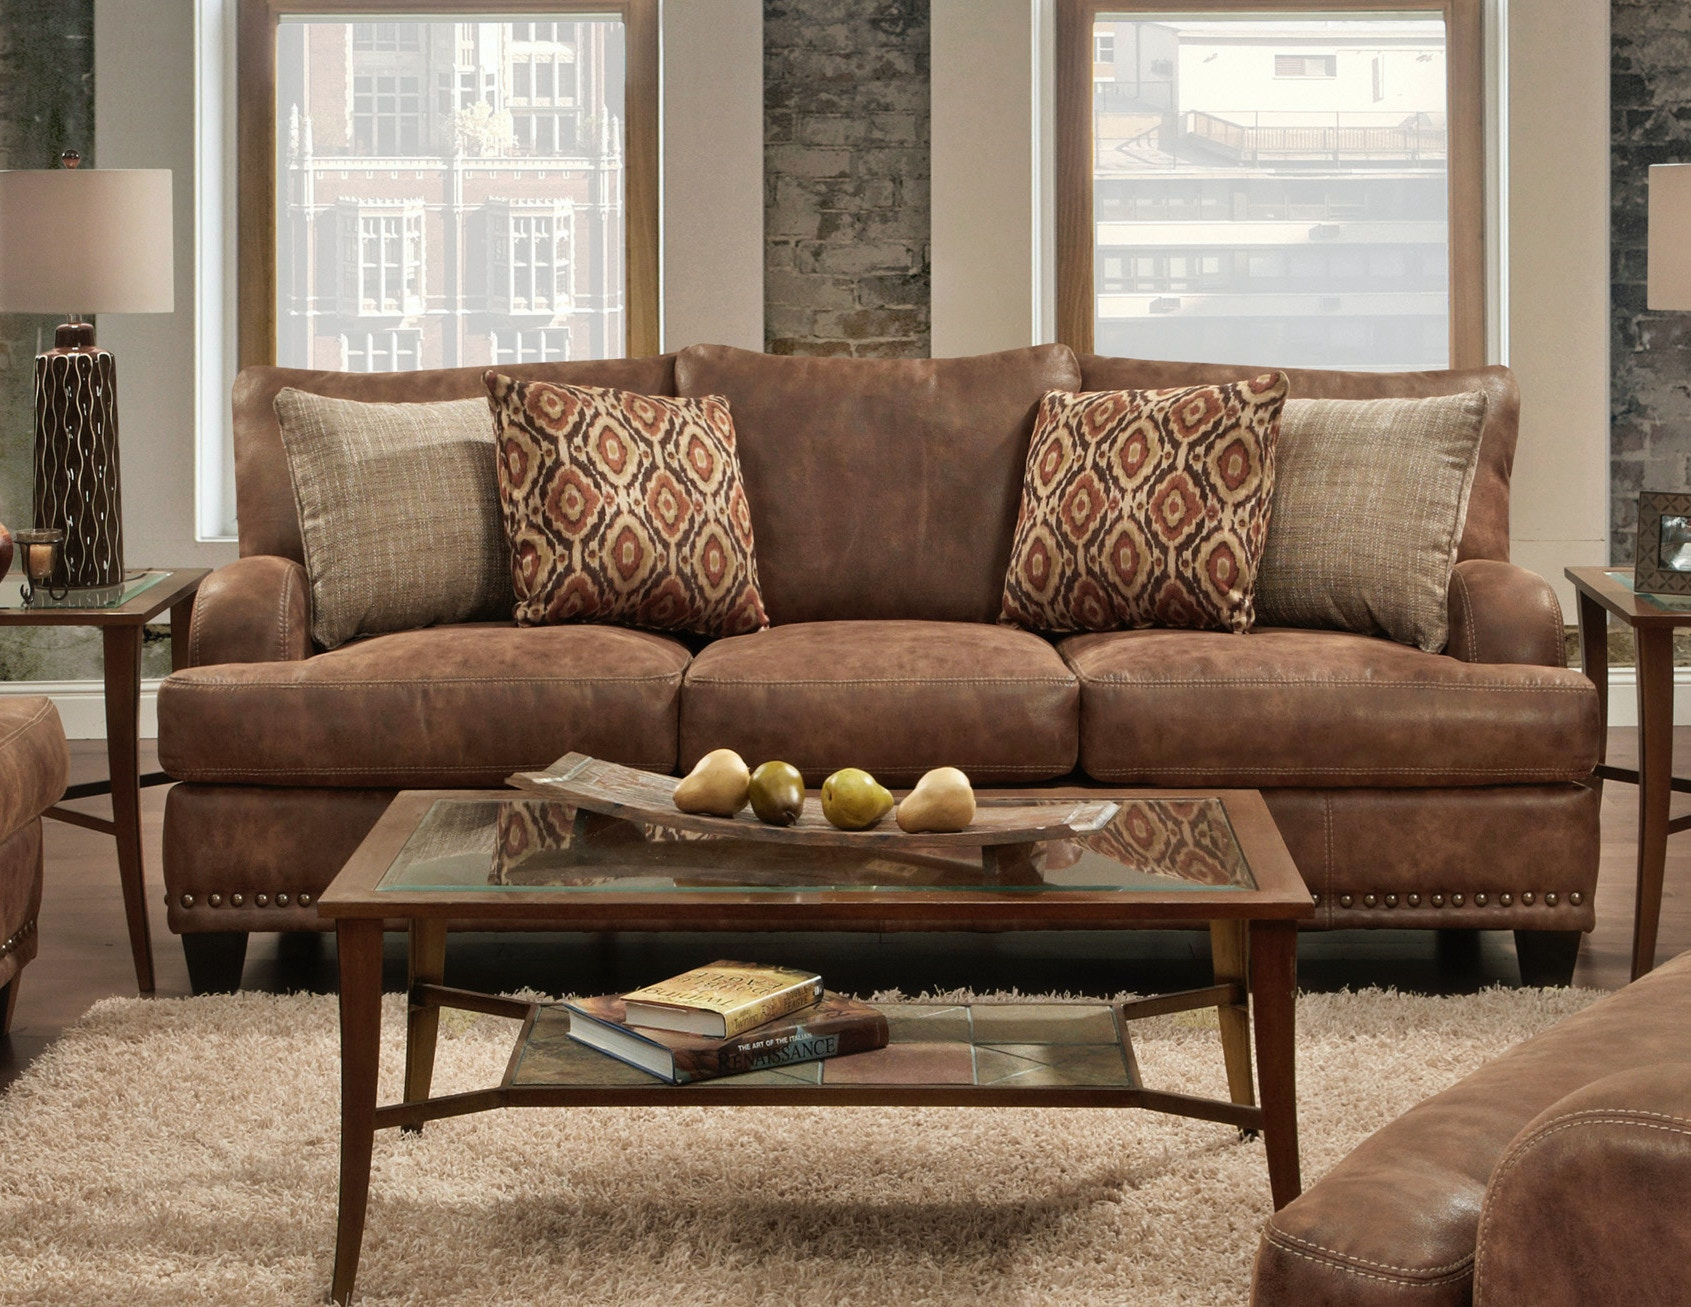 Franklin Indira Faux Leather Sofa 84840 8337 15 Part 81